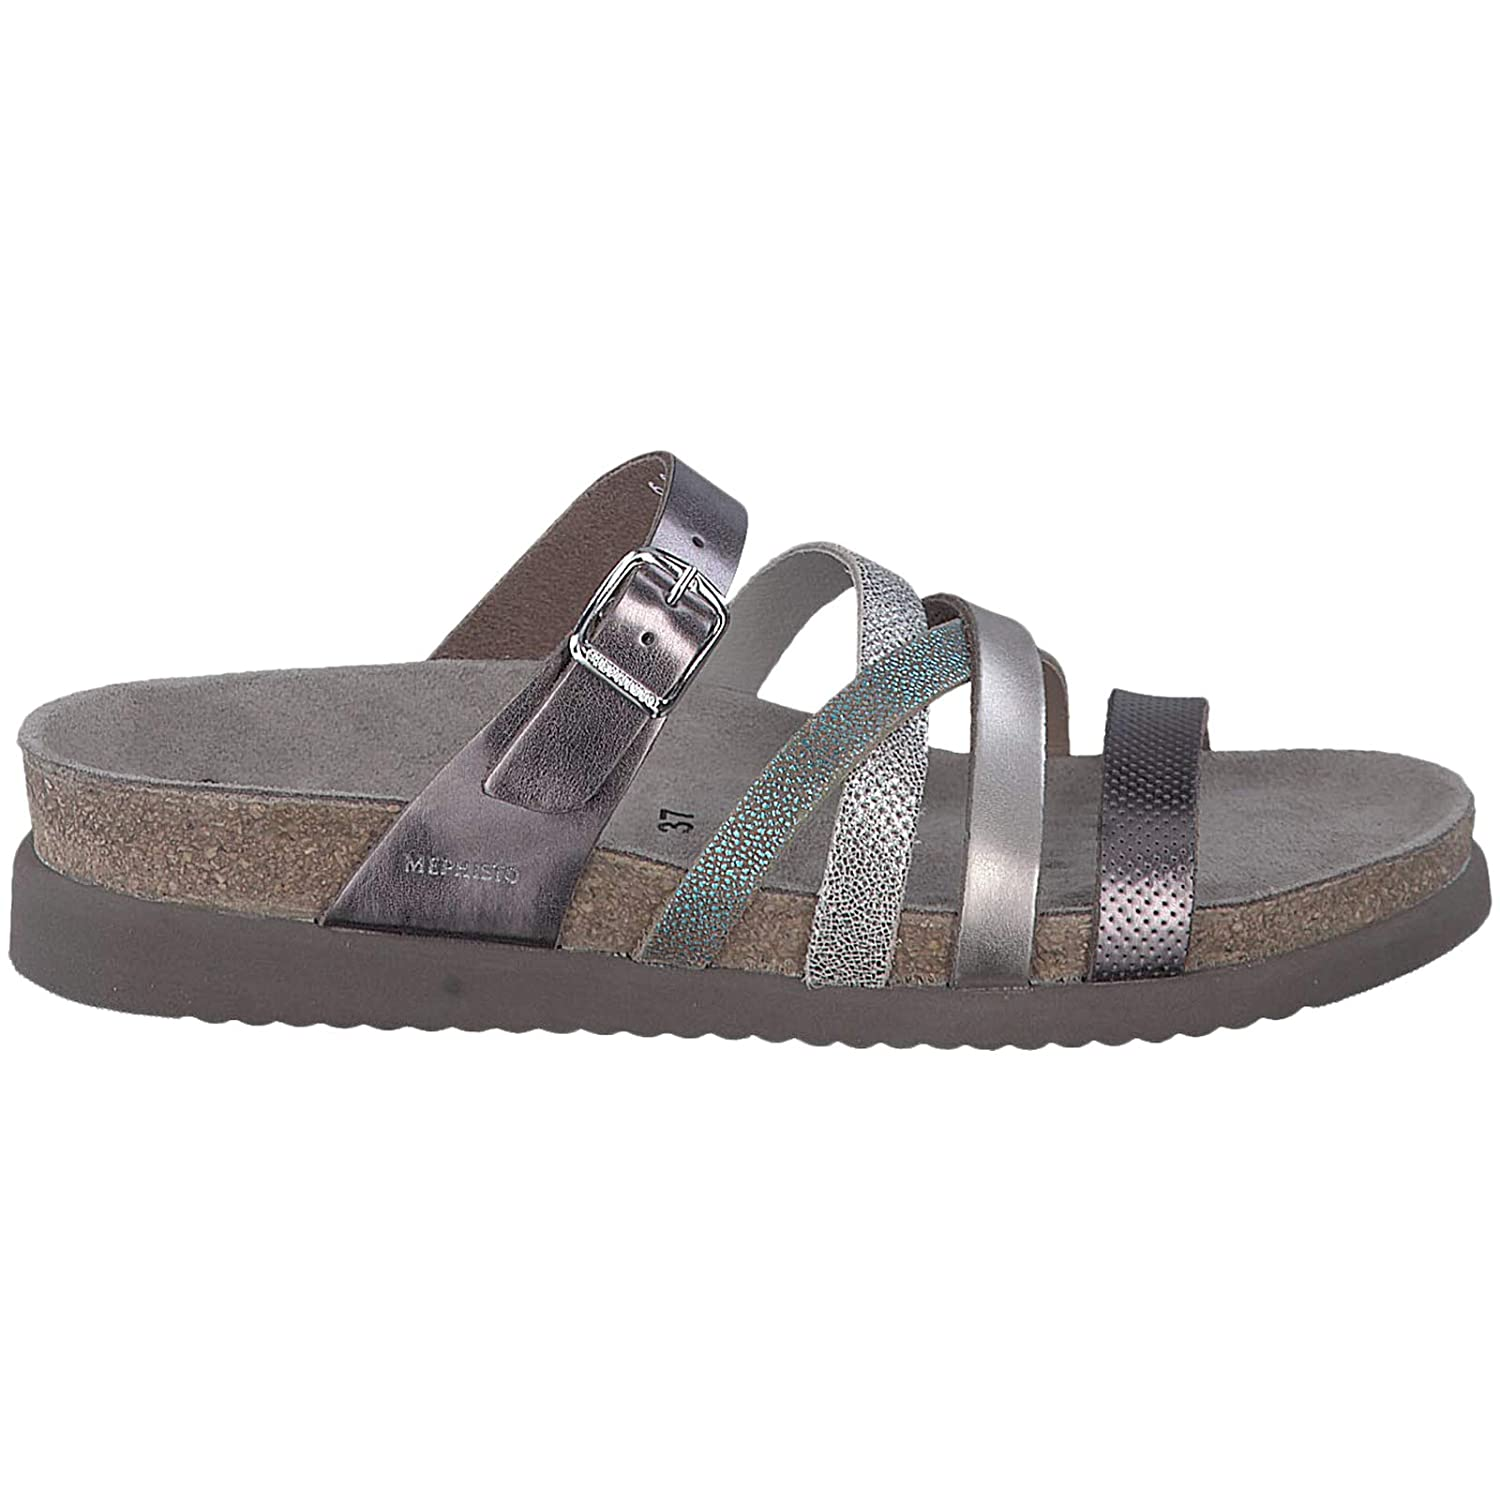 2a25b4a7f31 Amazon.com   Mephisto Womens Huleda Leather Open Toe Casual Slide Sandals    Sandals